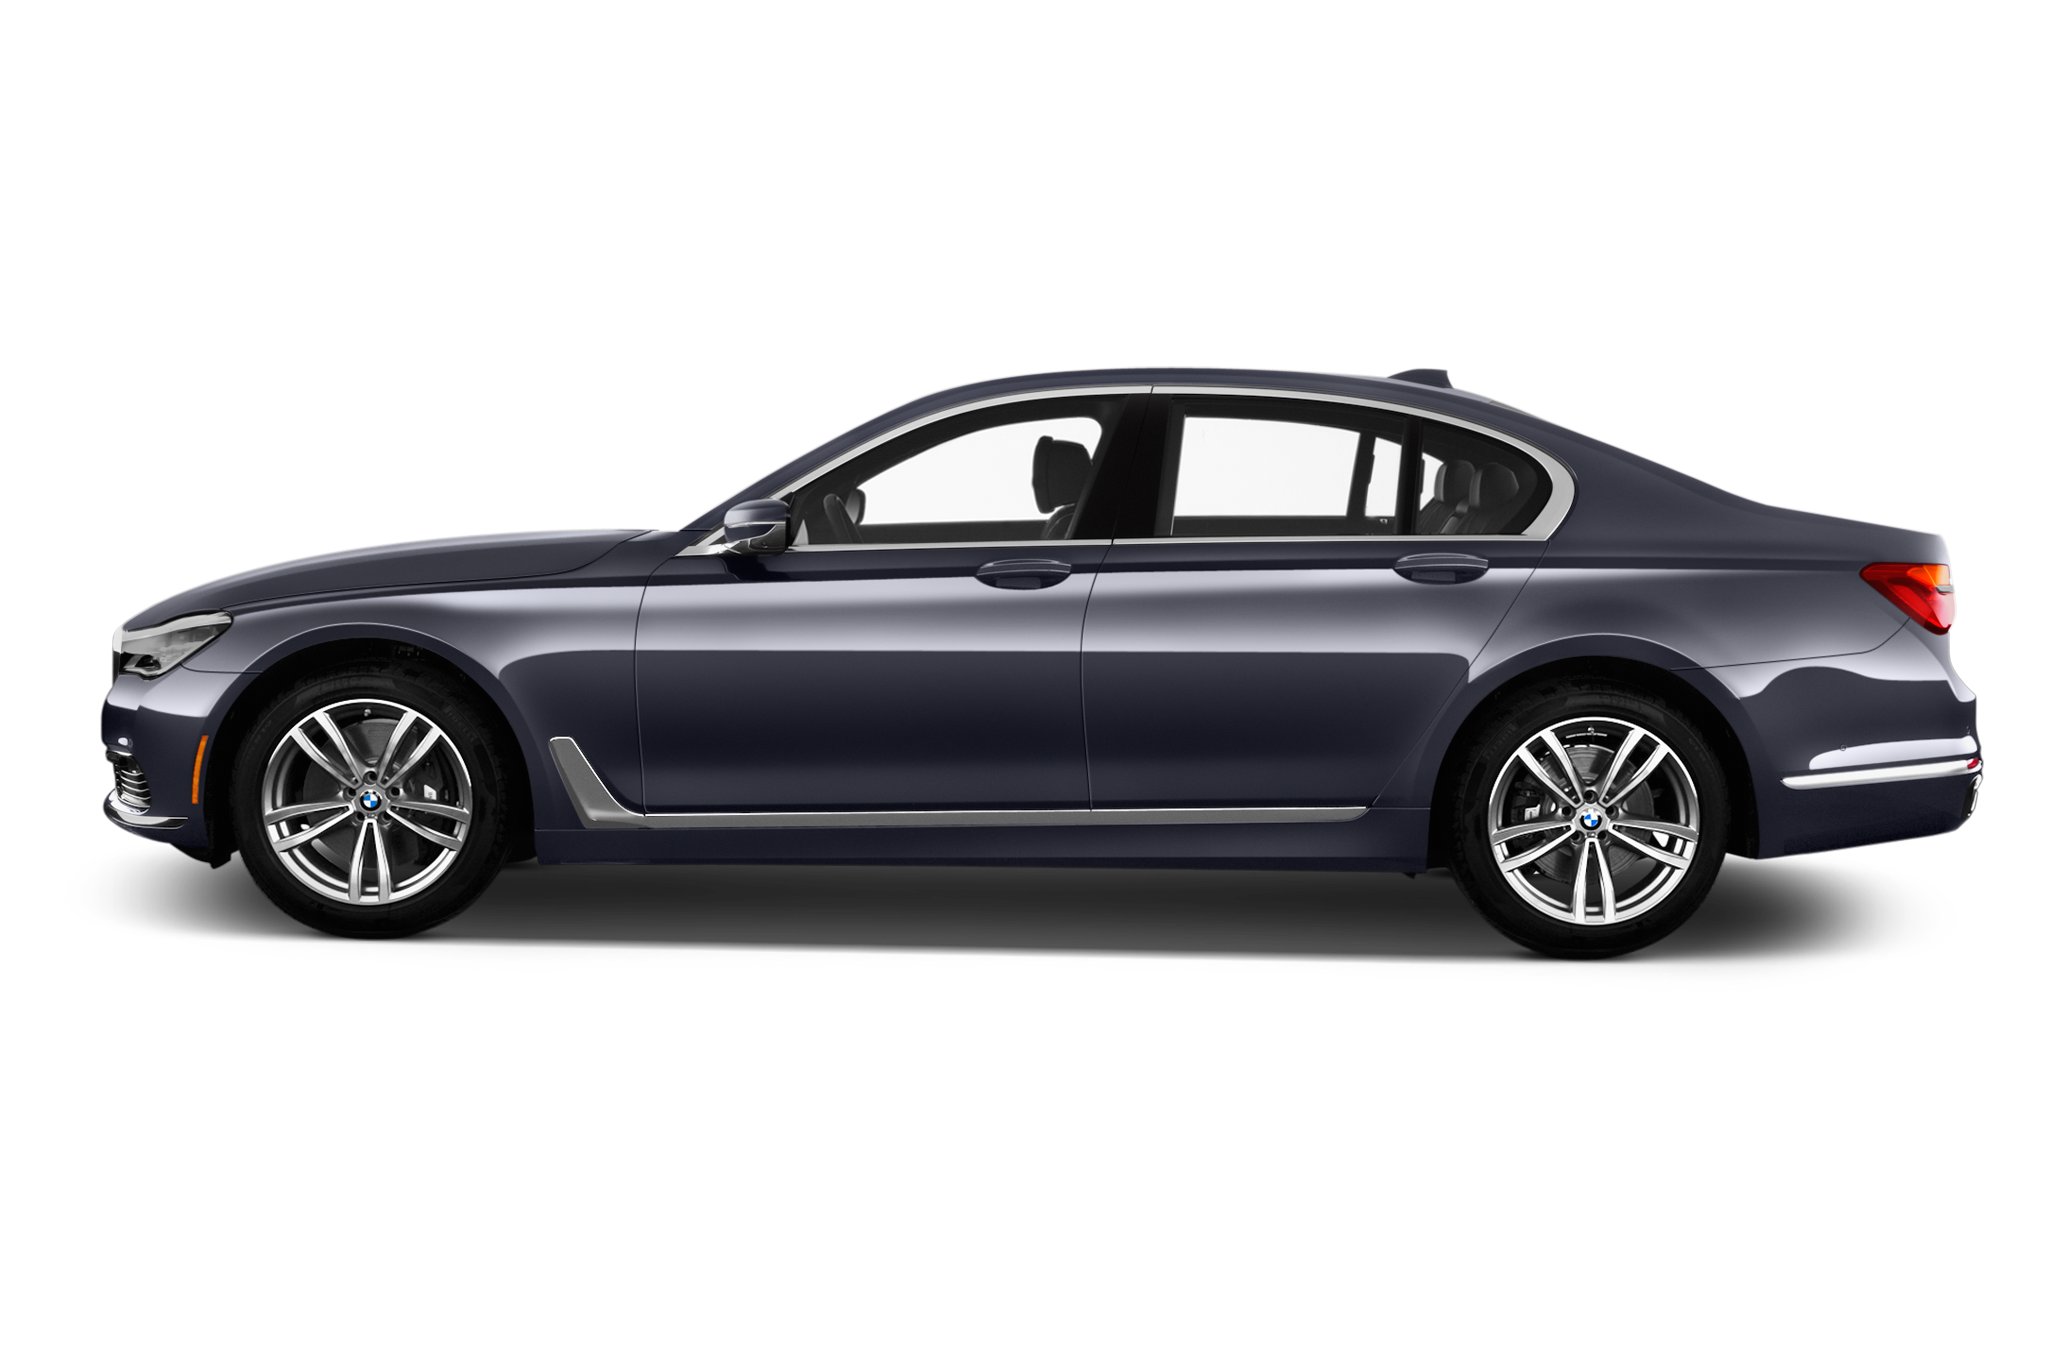 bmw 7 series There are 13 classic bmw 7 series vehicles for sale today on classiccarscom more listings are added daily email alerts available.